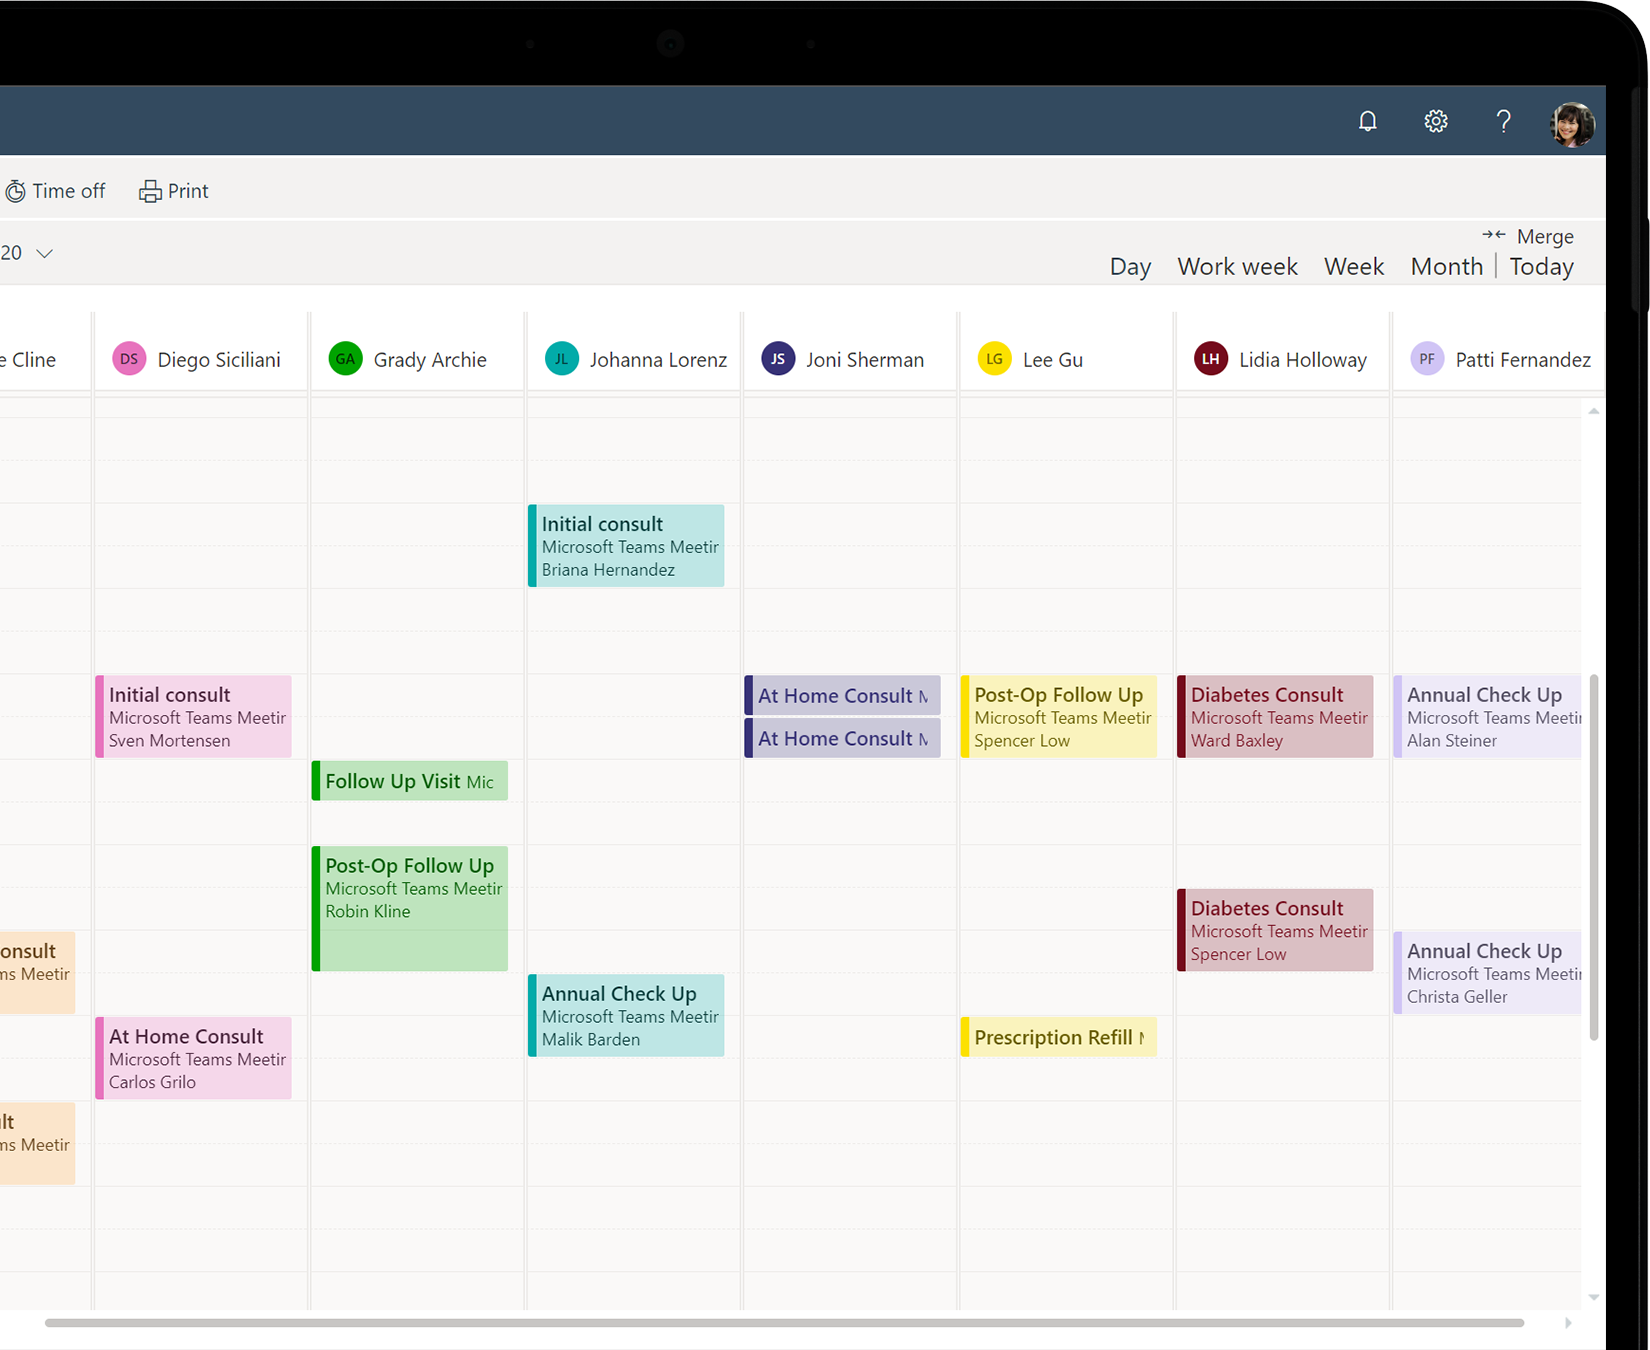 A device screen showing staff members' schedules in the Microsoft Bookings main calendar